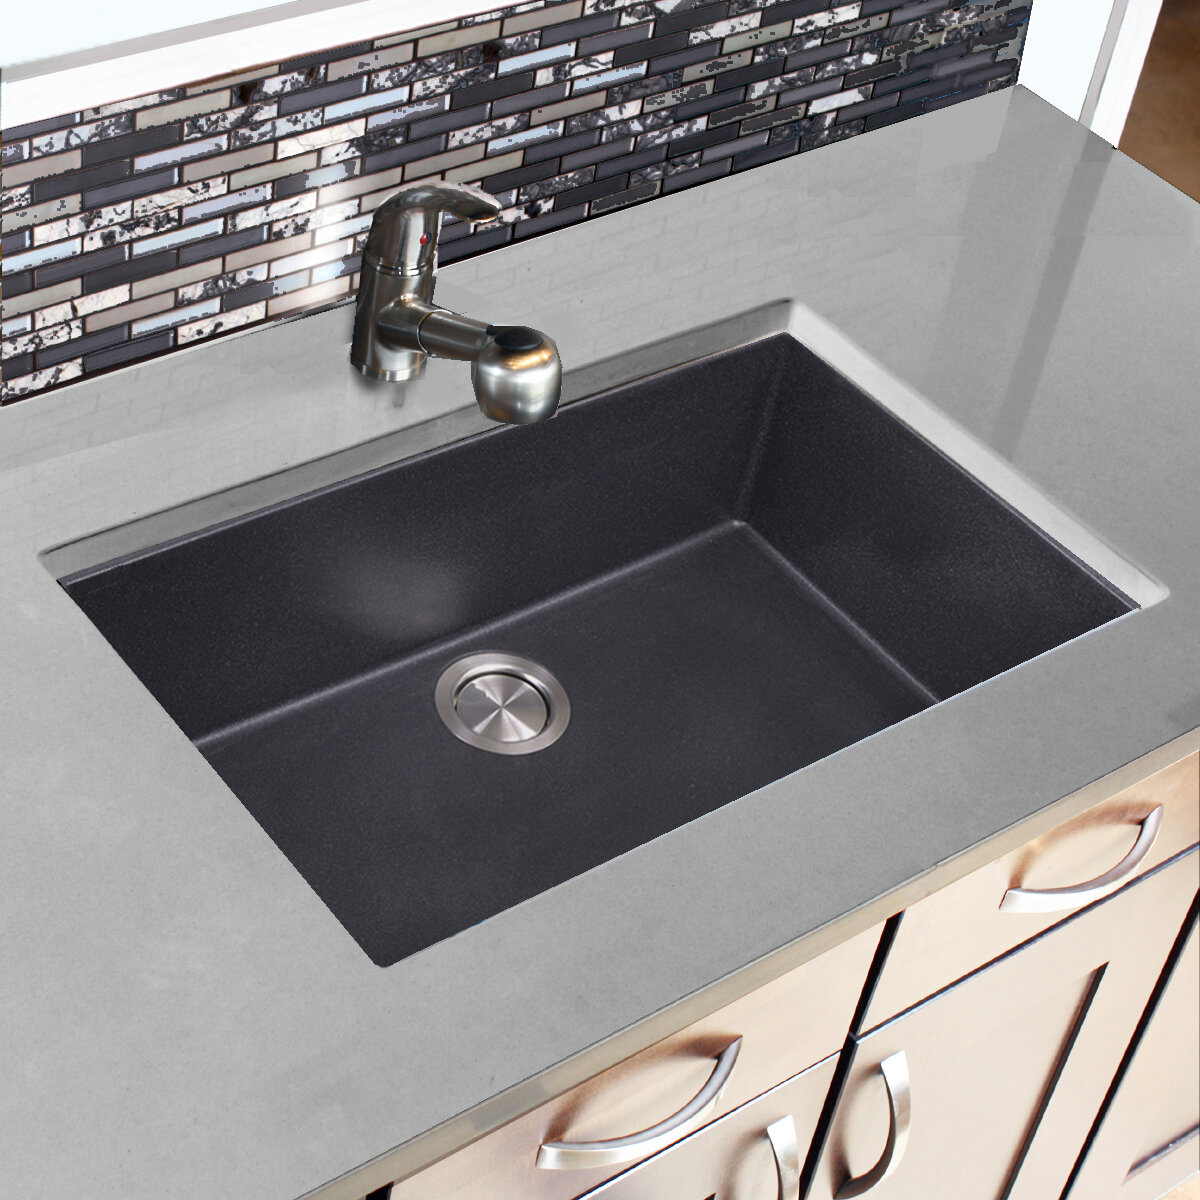 Nantucket Sinks Plymouth 30 L X 20 W Drop In Kitchen Sink